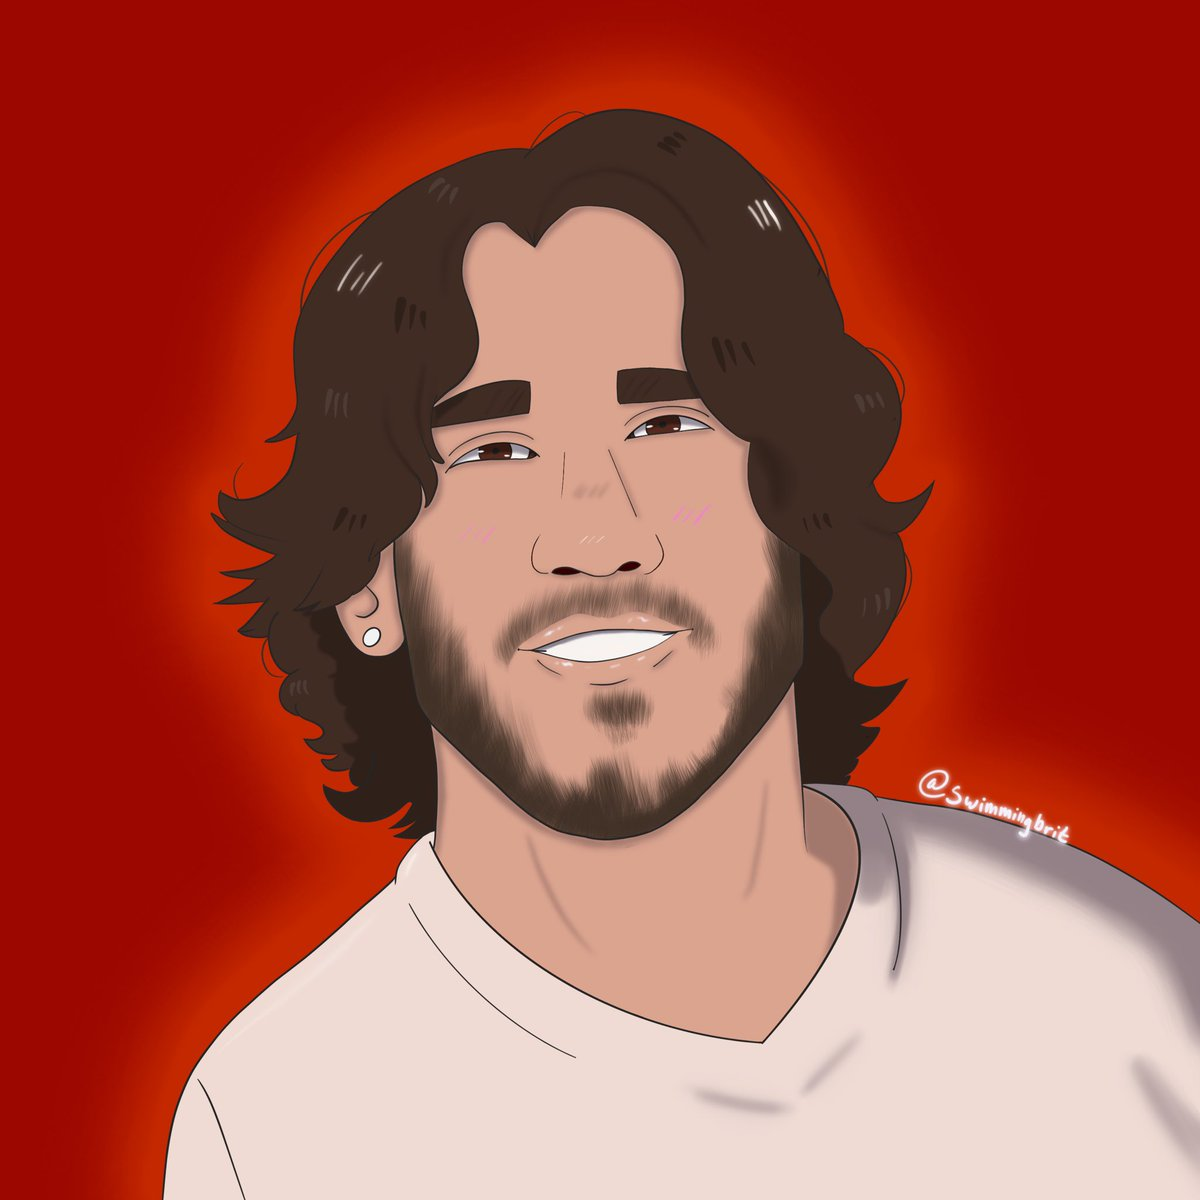 So happy to hear that @markiplier is back at home and feeling well. I wanted to do something nice, and so I drew him. Hope you like. #GetWellSoonMark #markiplier